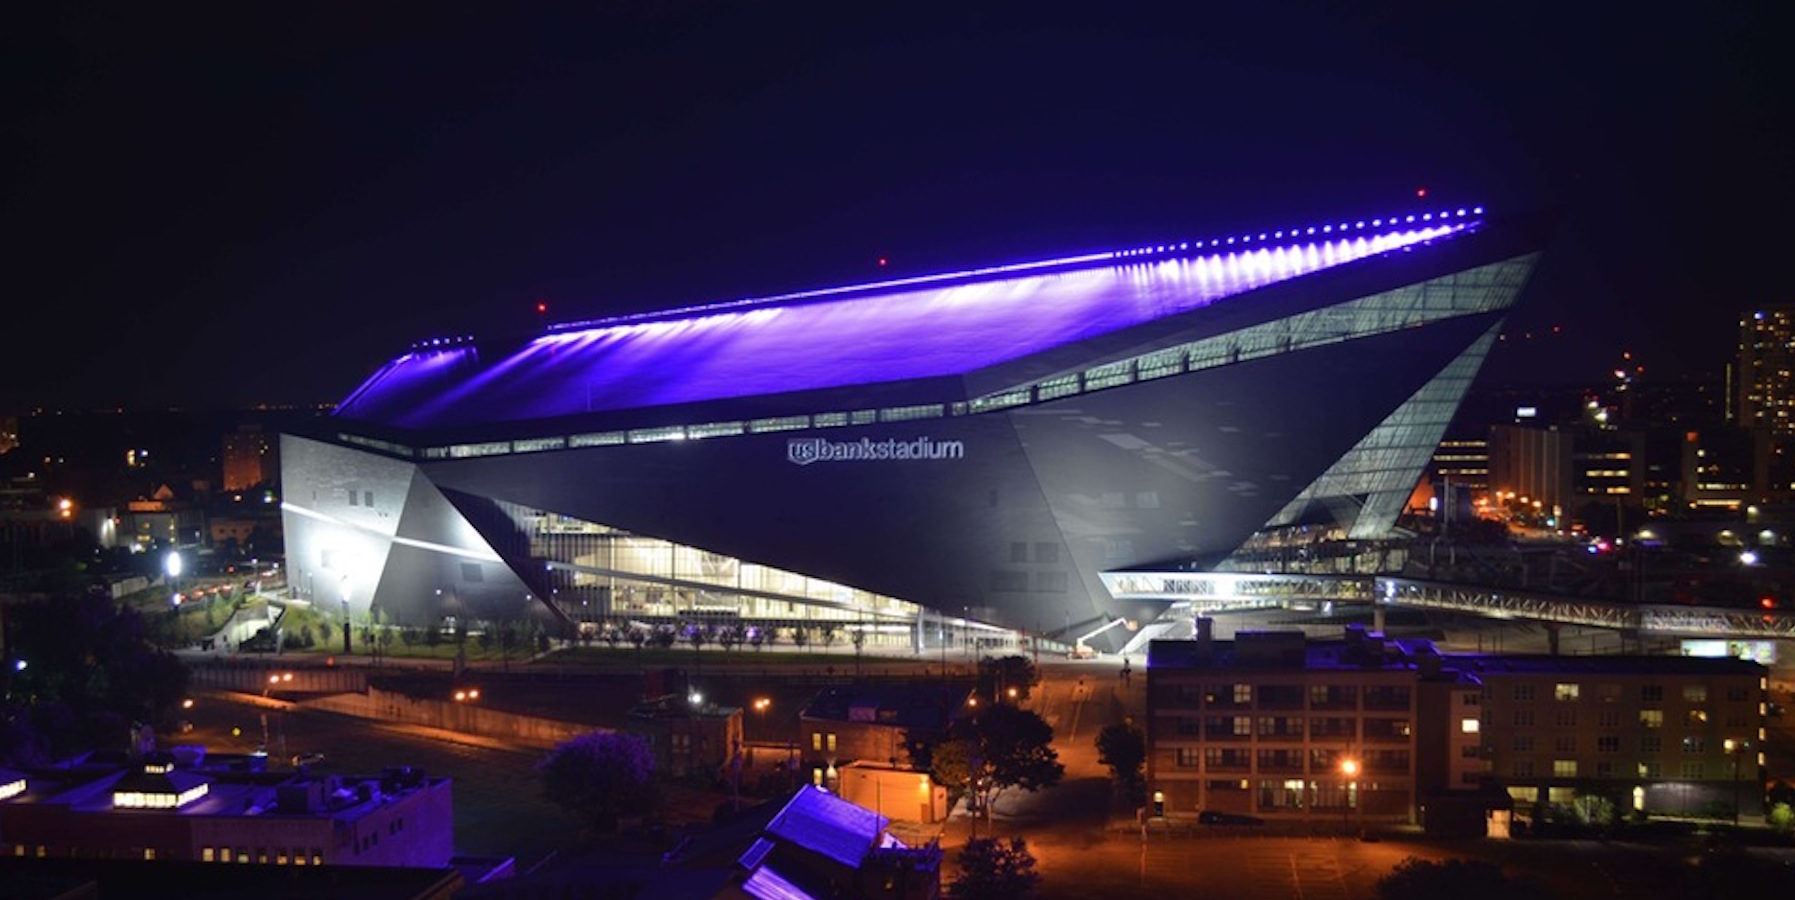 US Bank Stadium, home of the Minnesota Vikings